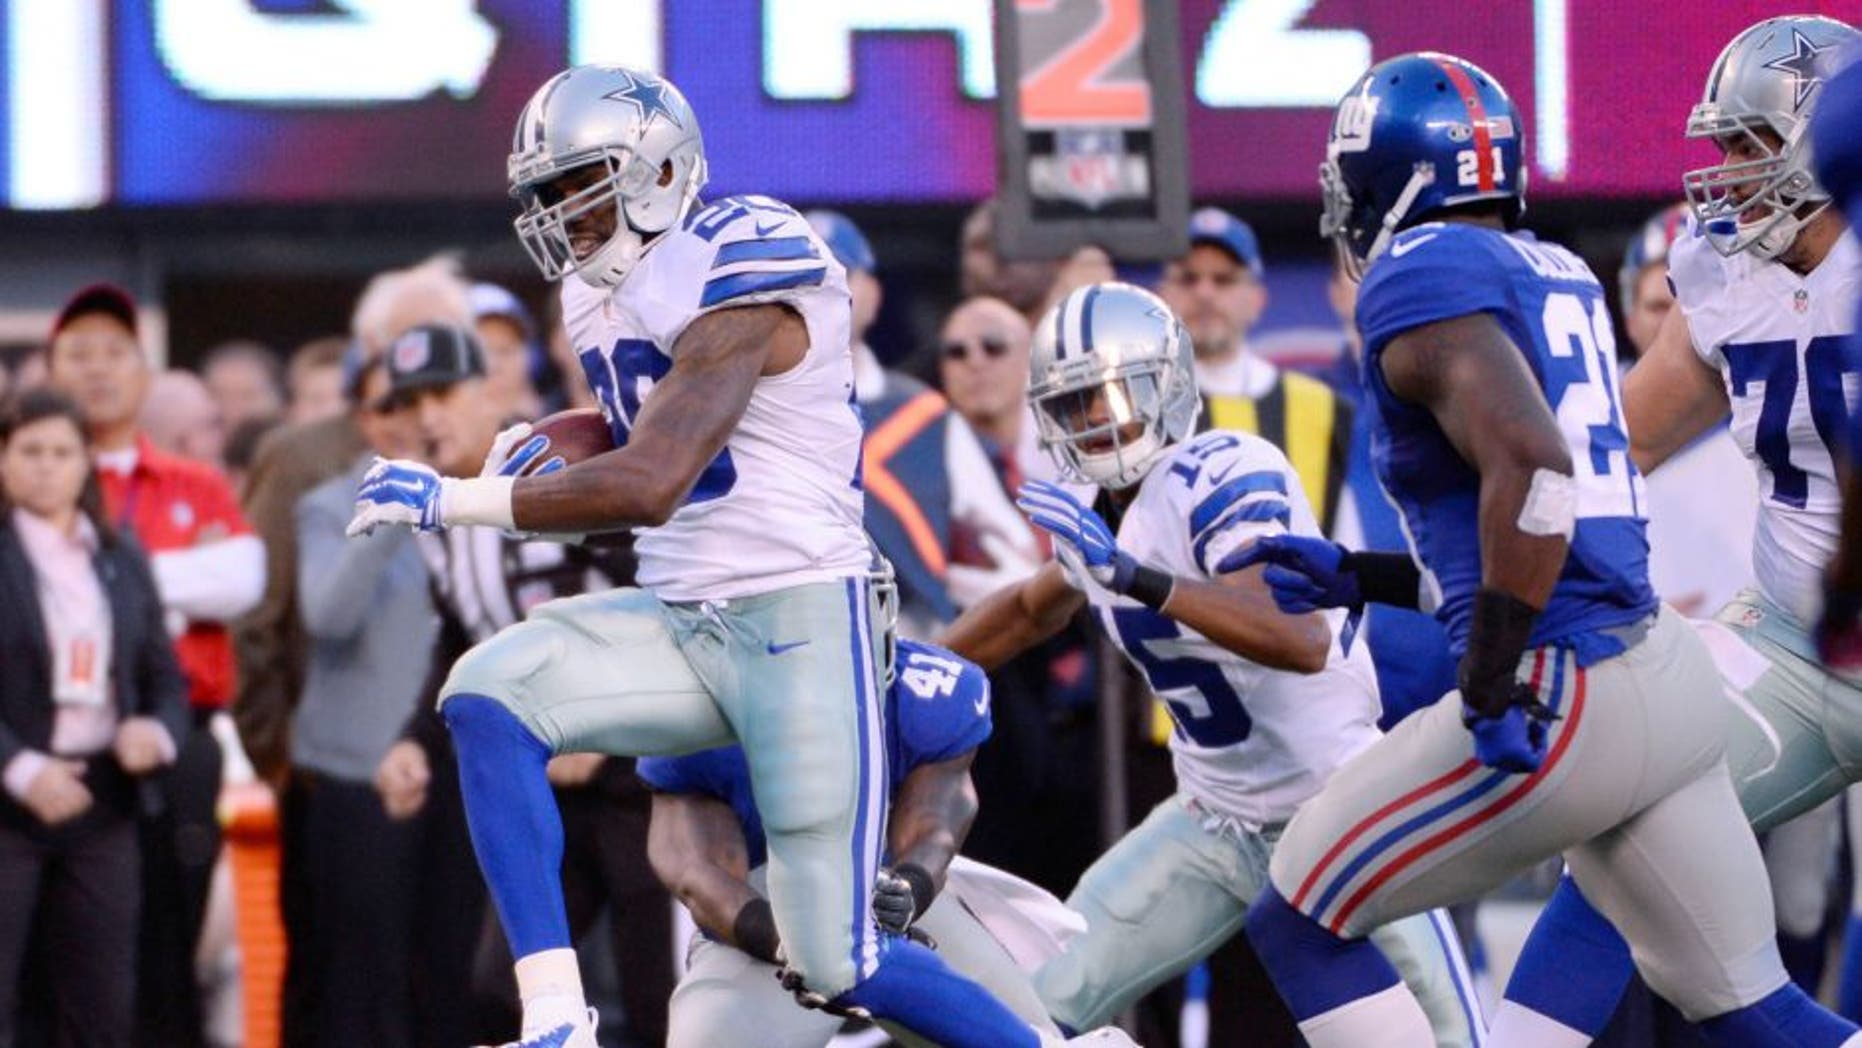 Oct 25, 2015; East Rutherford, NJ, USA; Dallas Cowboys running back Darren McFadden (20) runs against the New York Giants in the first half during the NFL game at MetLife Stadium. Mandatory Credit: Robert Deutsch-USA TODAY Sports